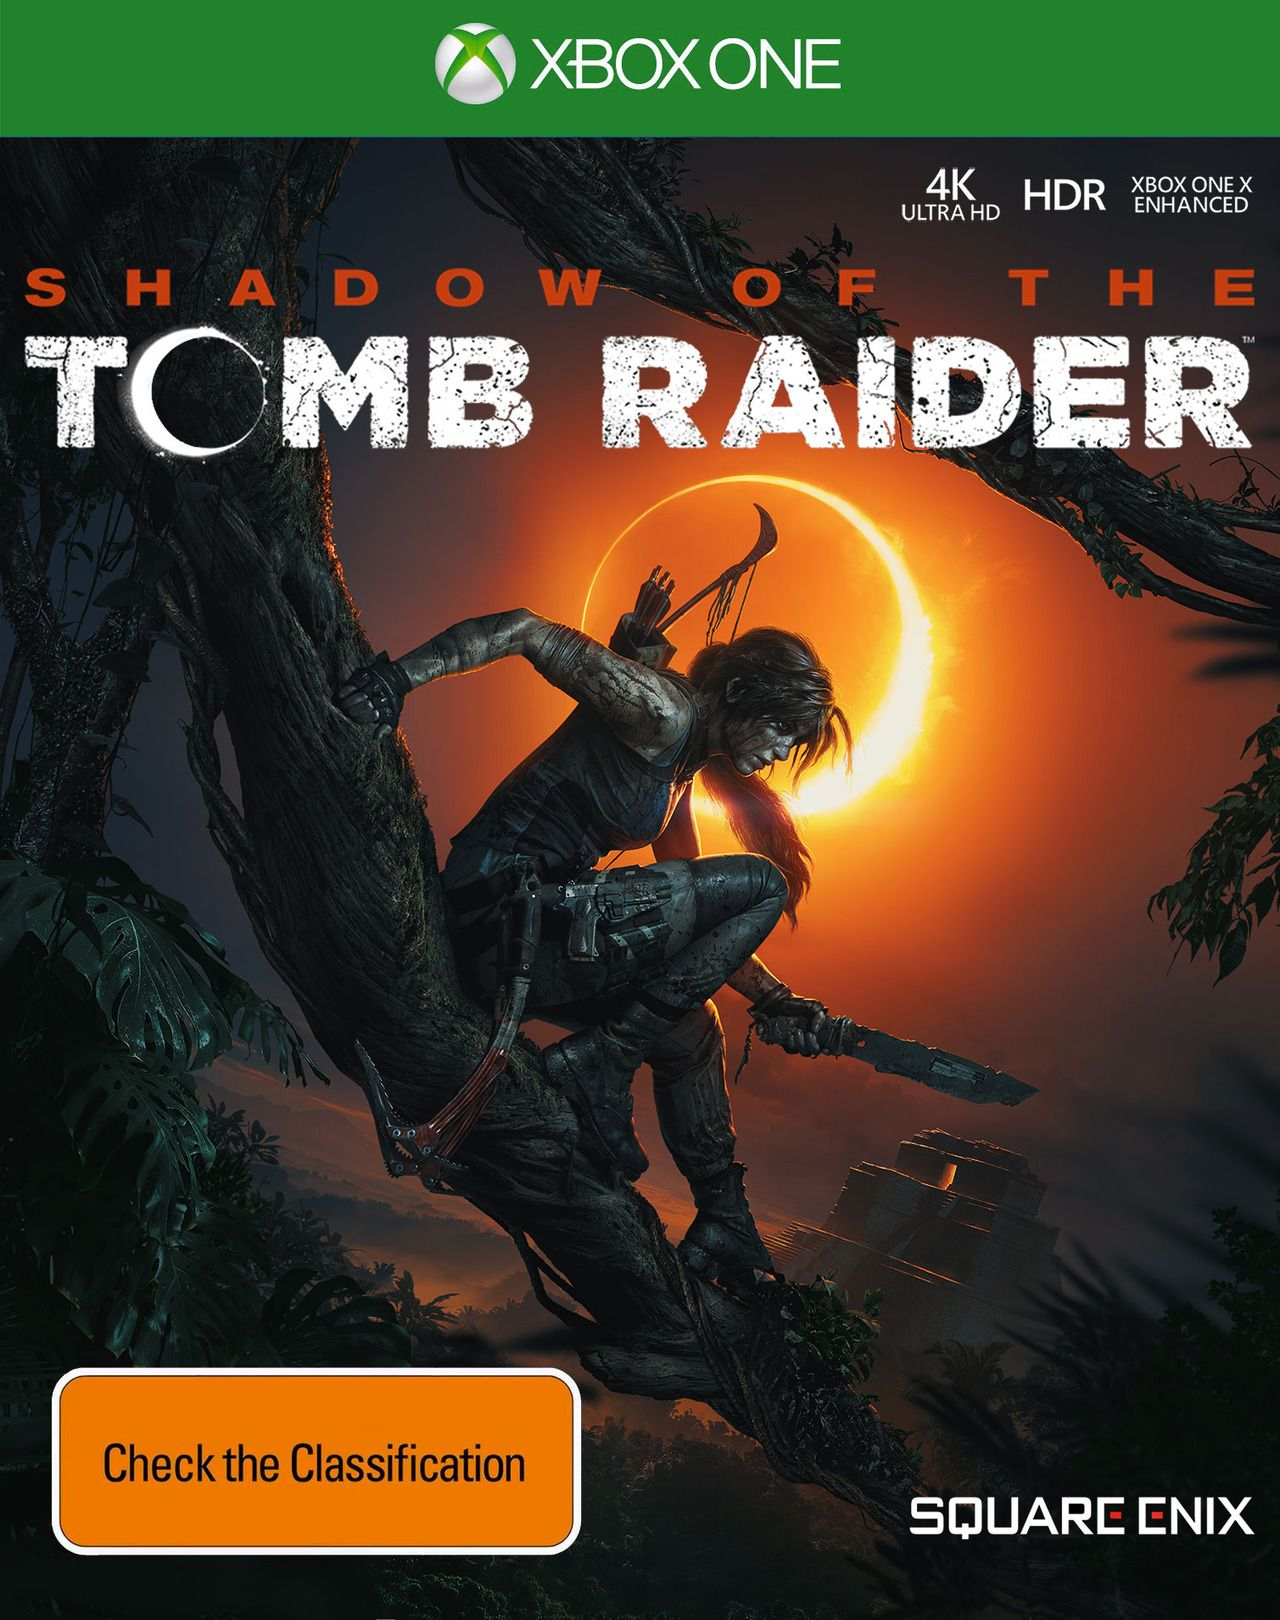 Shadow Of The Tomb Raider Xbox One X Cover Art Tomb Raider Xbox